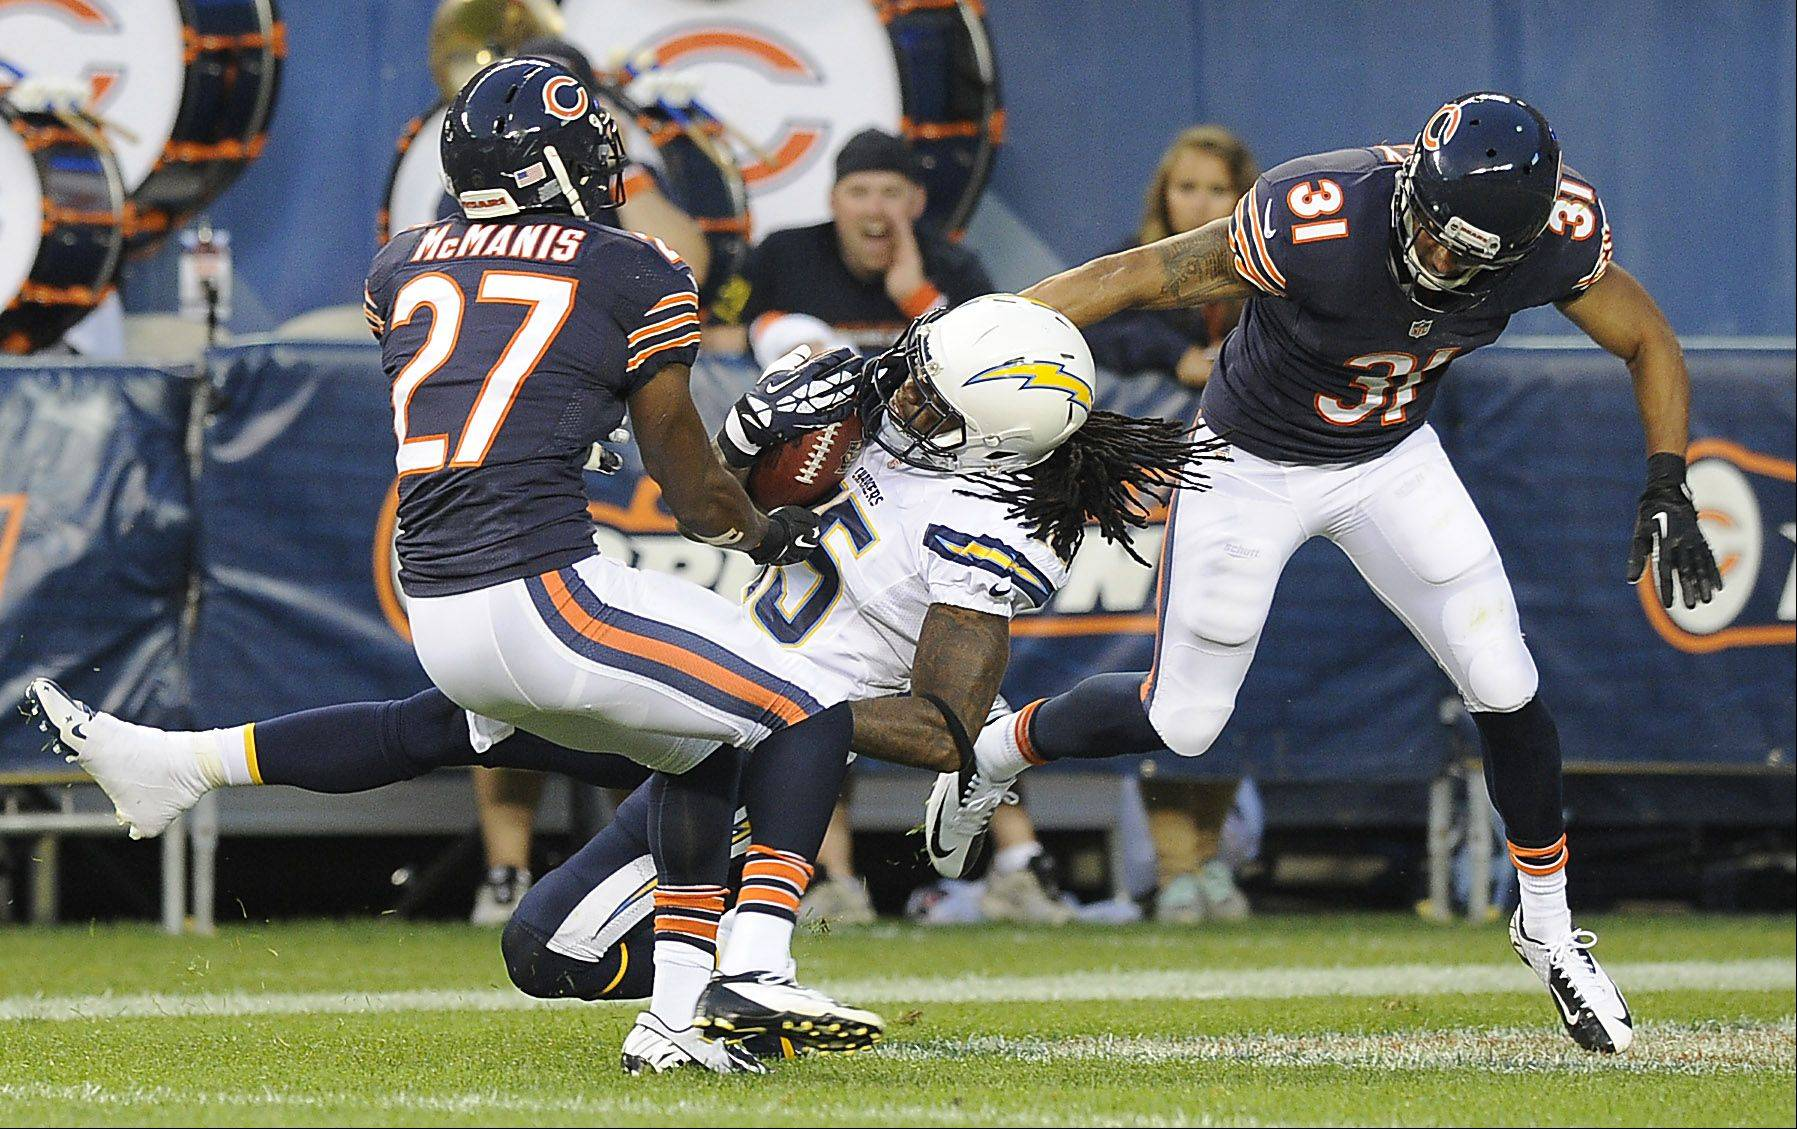 Chicago Bears Isaiah Frey tackles the Chargers' Richard Goodman with the help of teammate Sherrick McManis on a kick return.